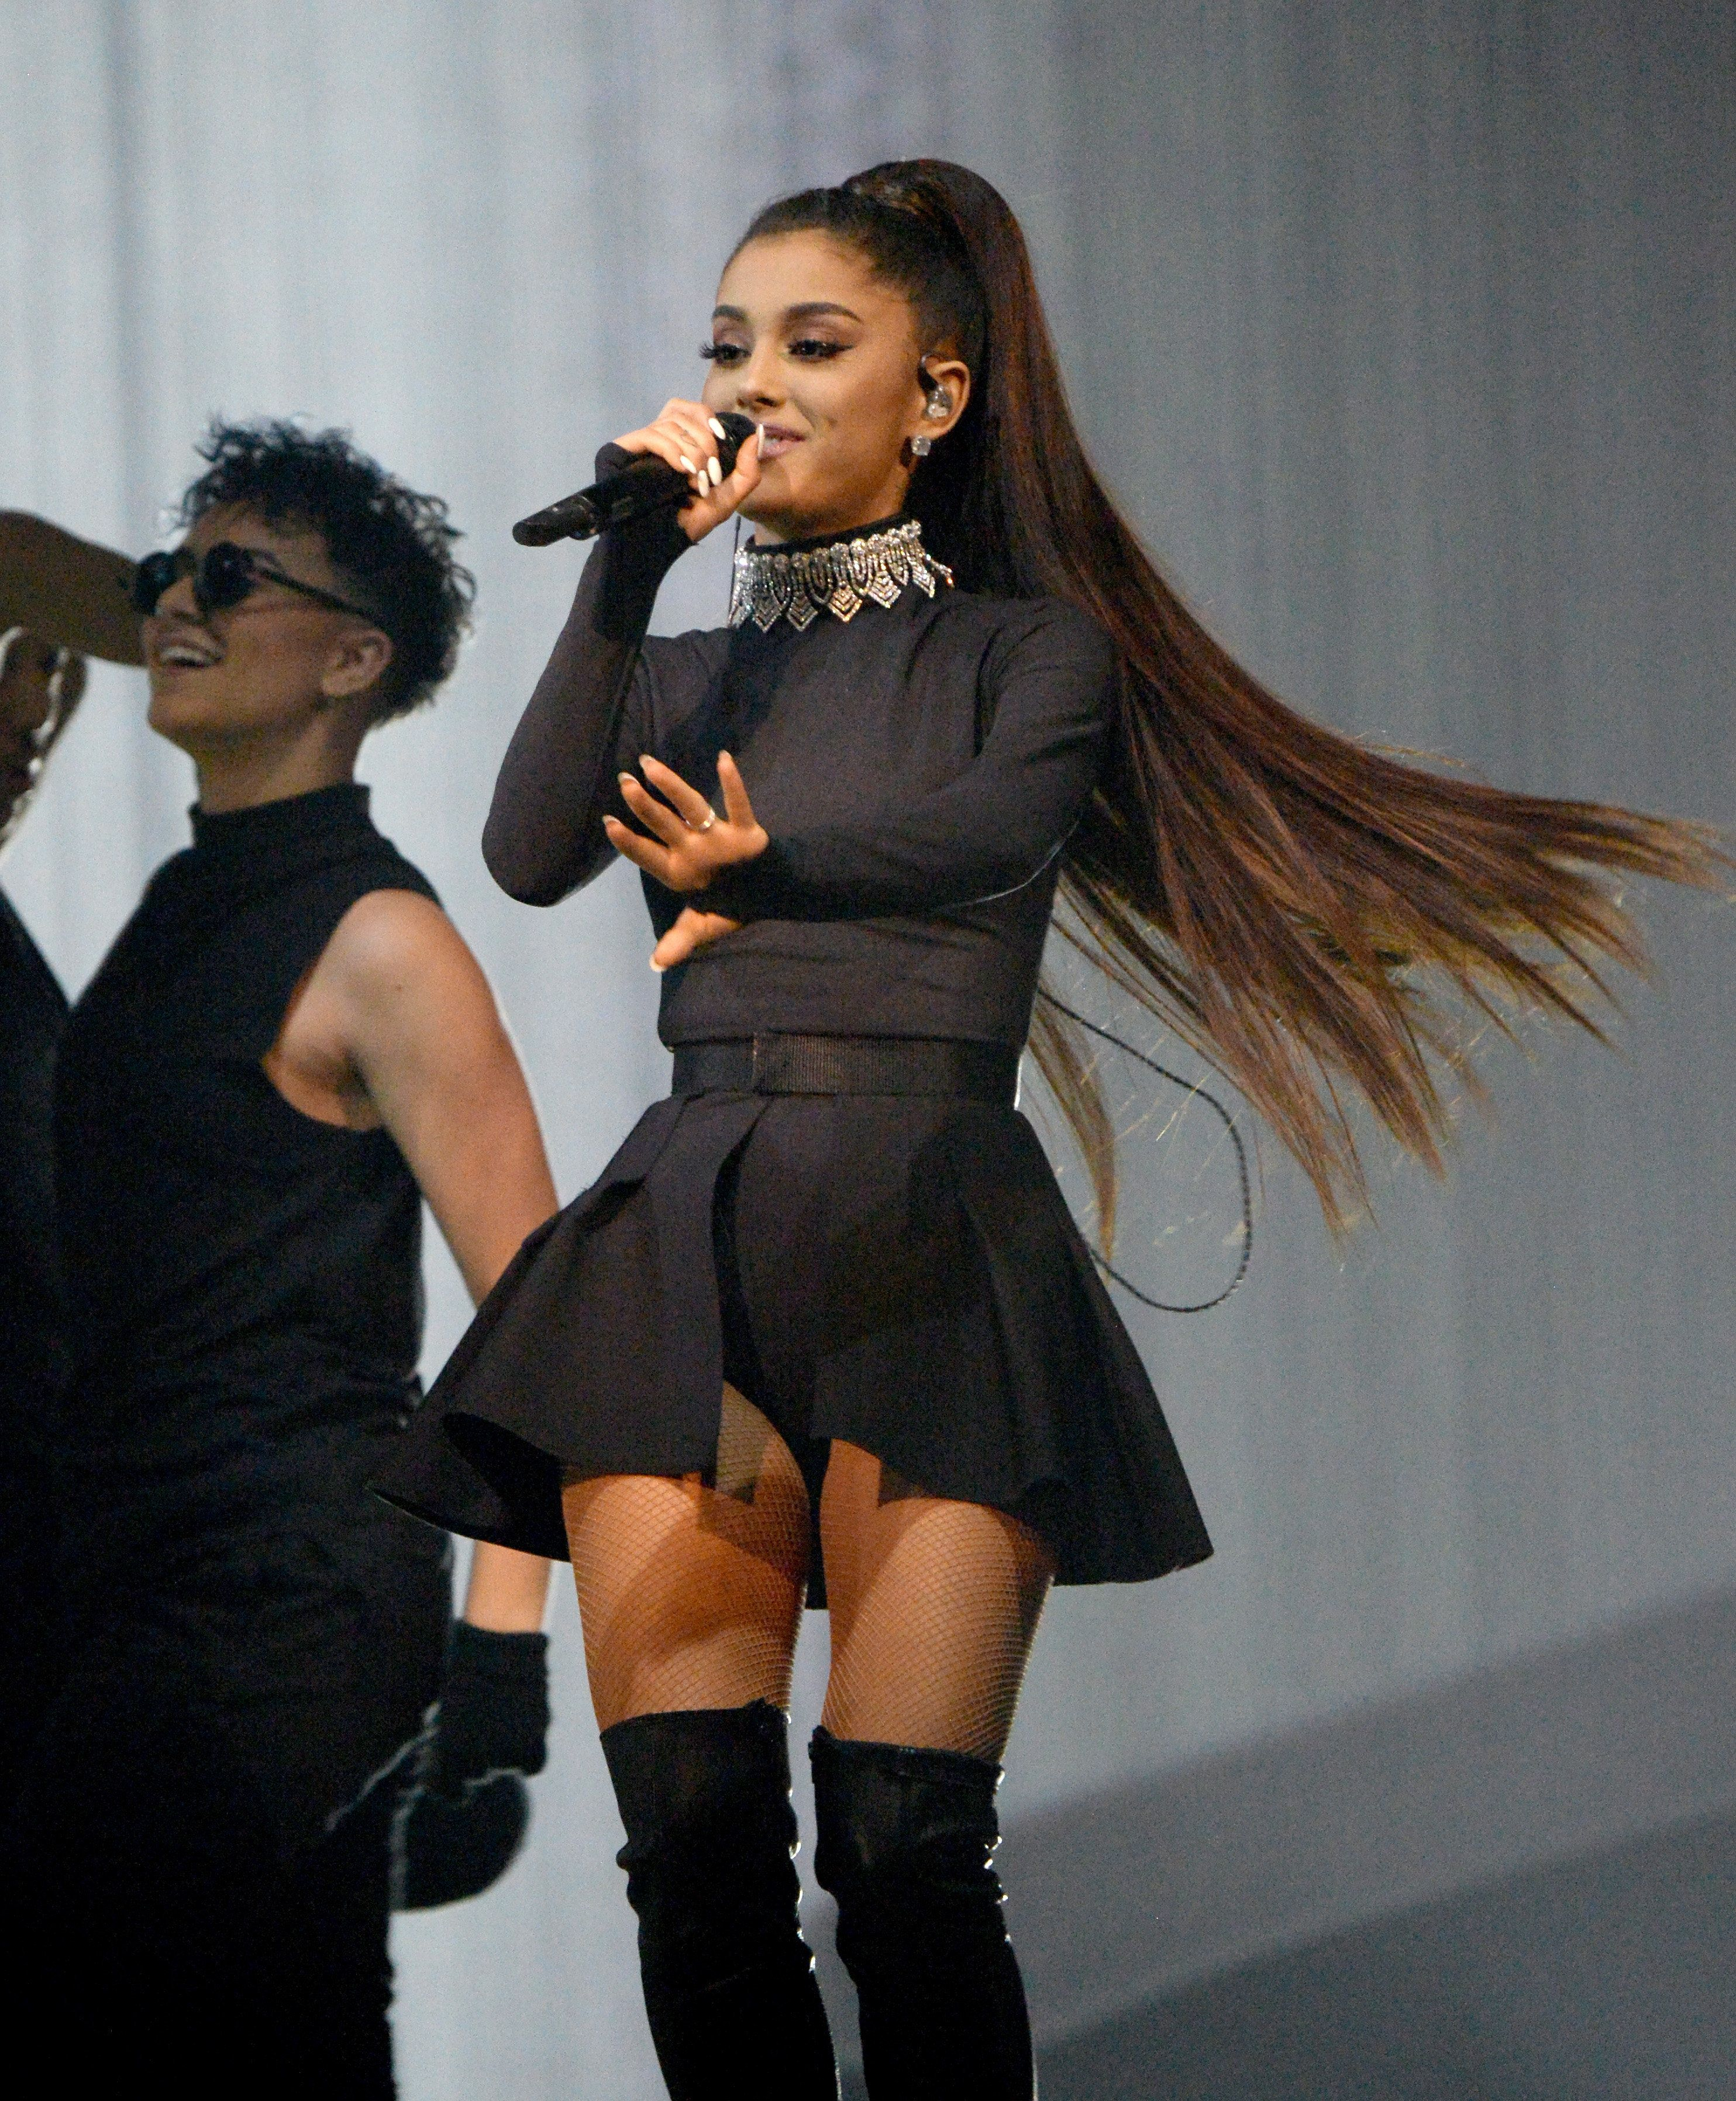 Ariana Grande 'To Return To Manchester Stage Within A Fortnight' In Tribute